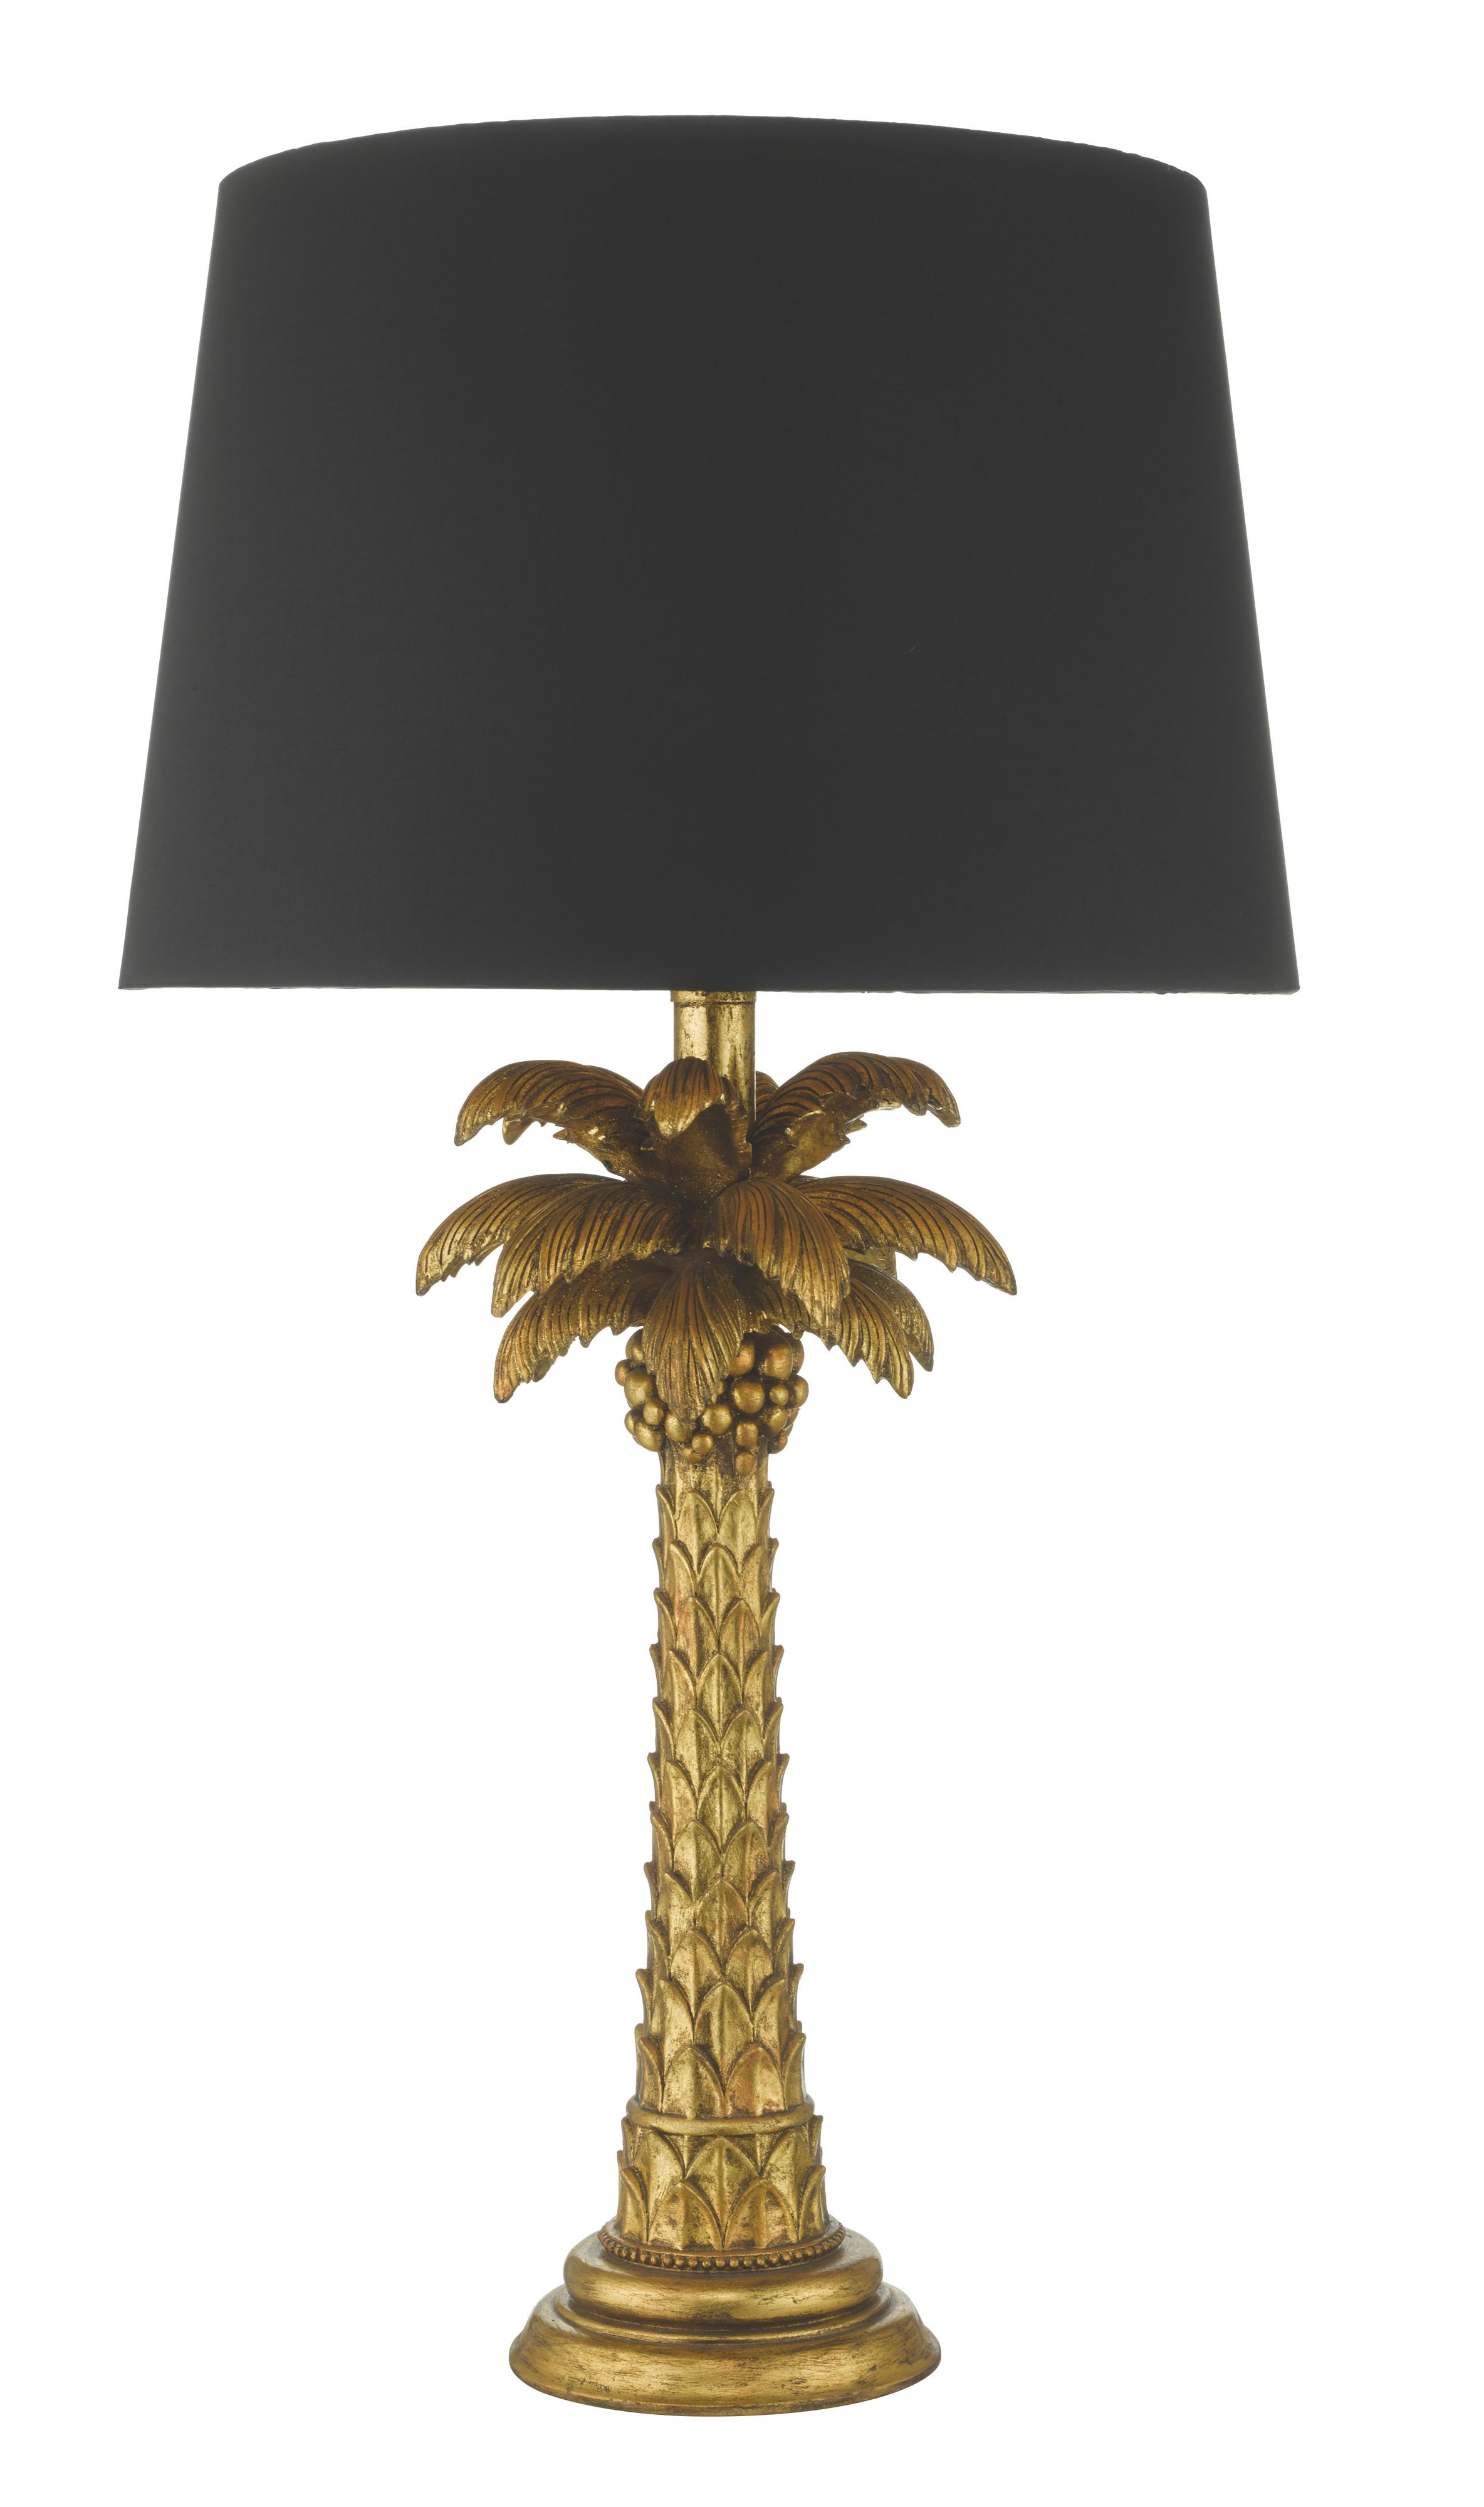 Table Lamps at House of Fraser